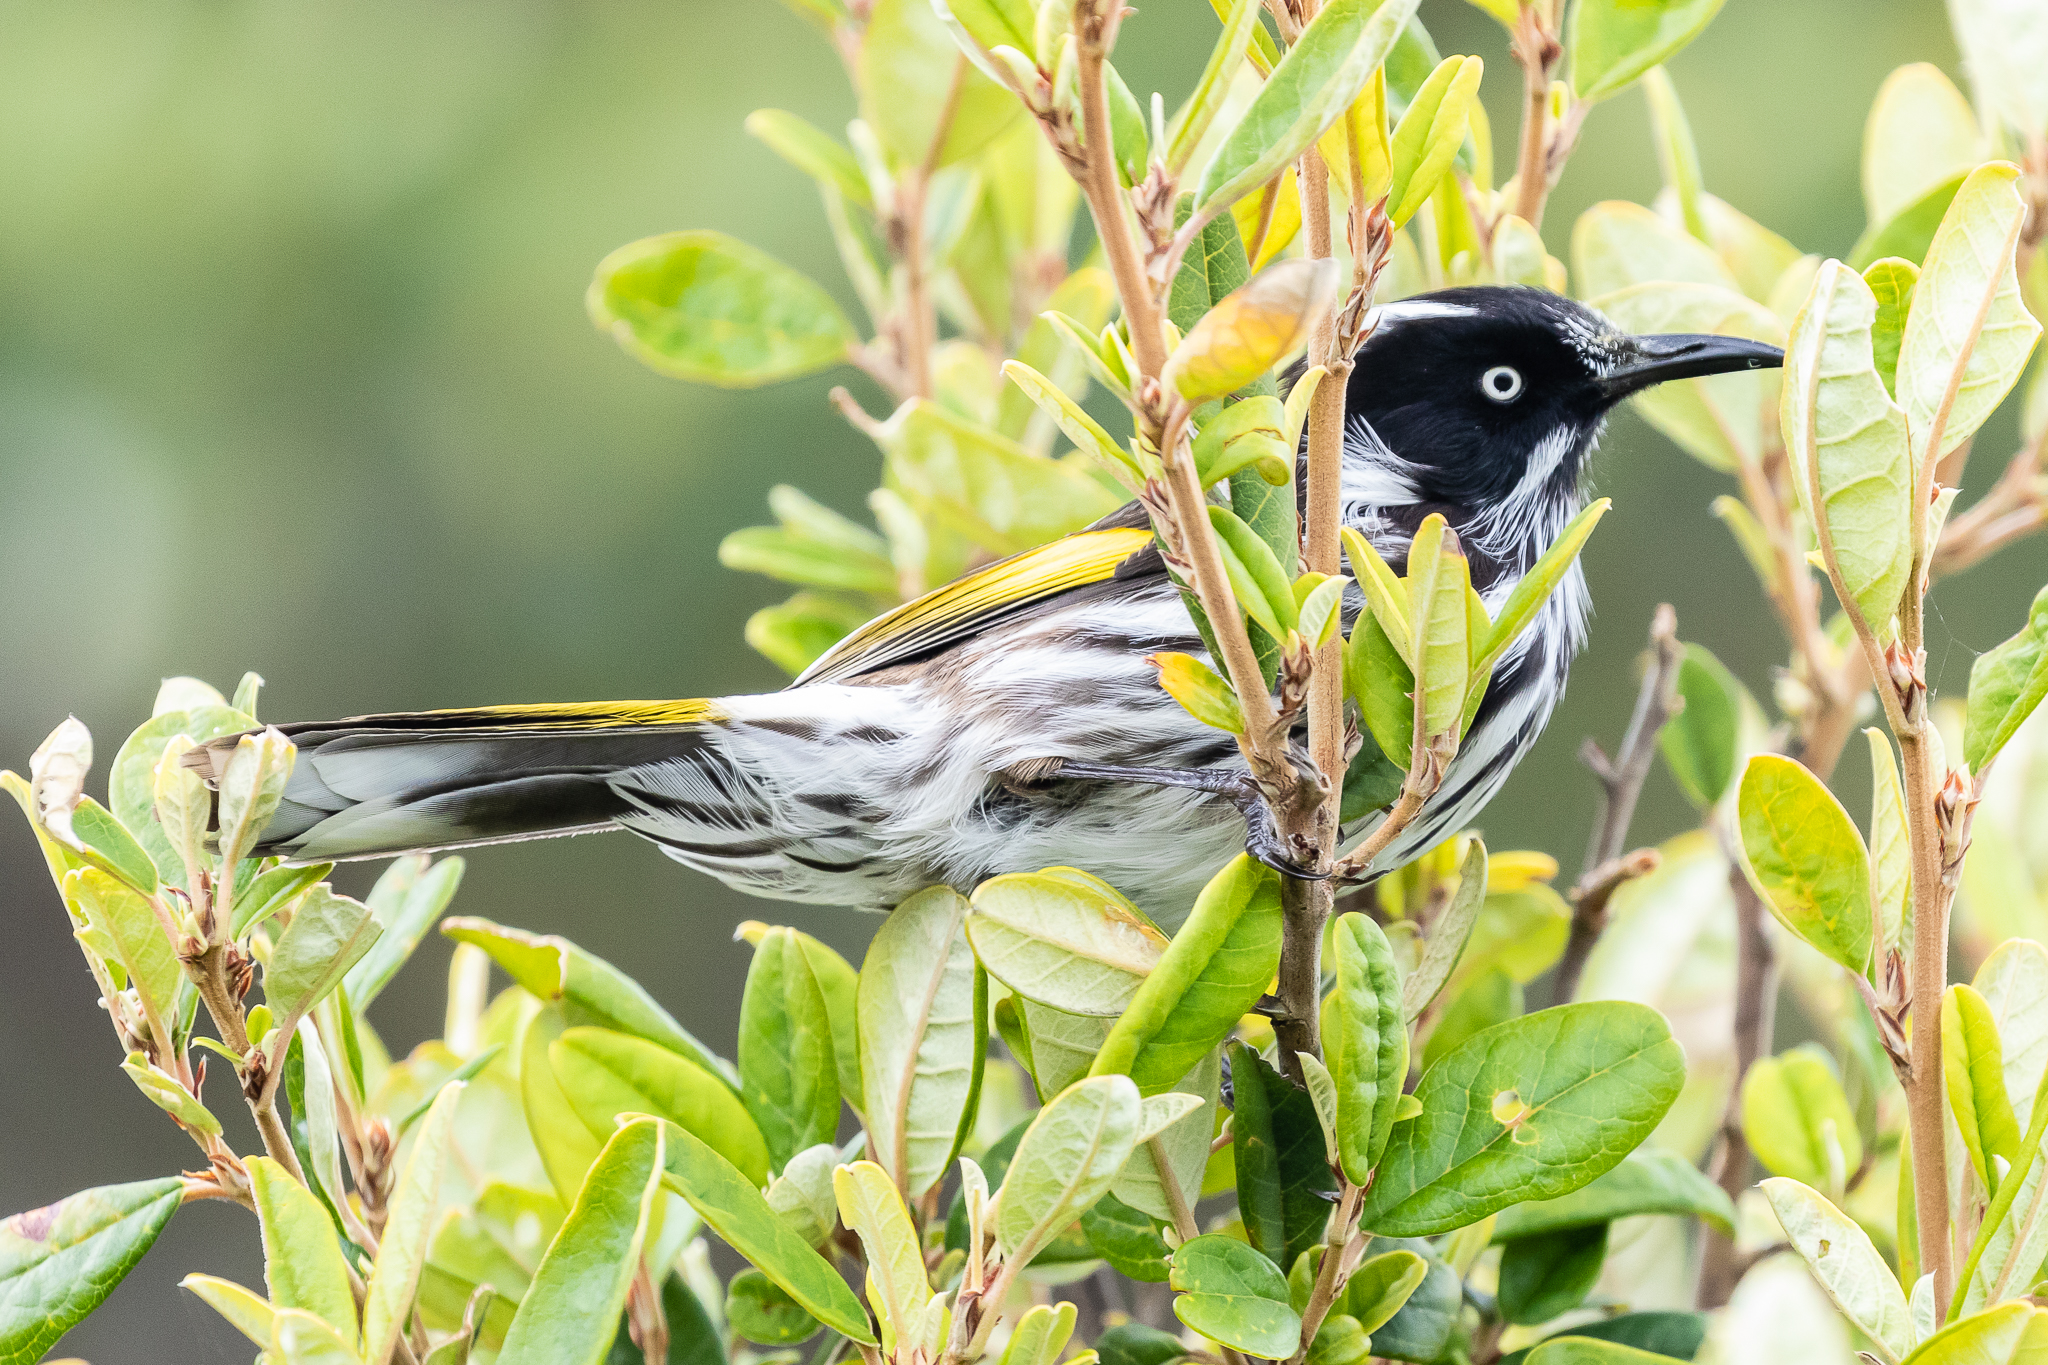 The New Holland Honeyeater is common around the south-east, southern and south-west coastlines of Australia. Often seen close to the beach.